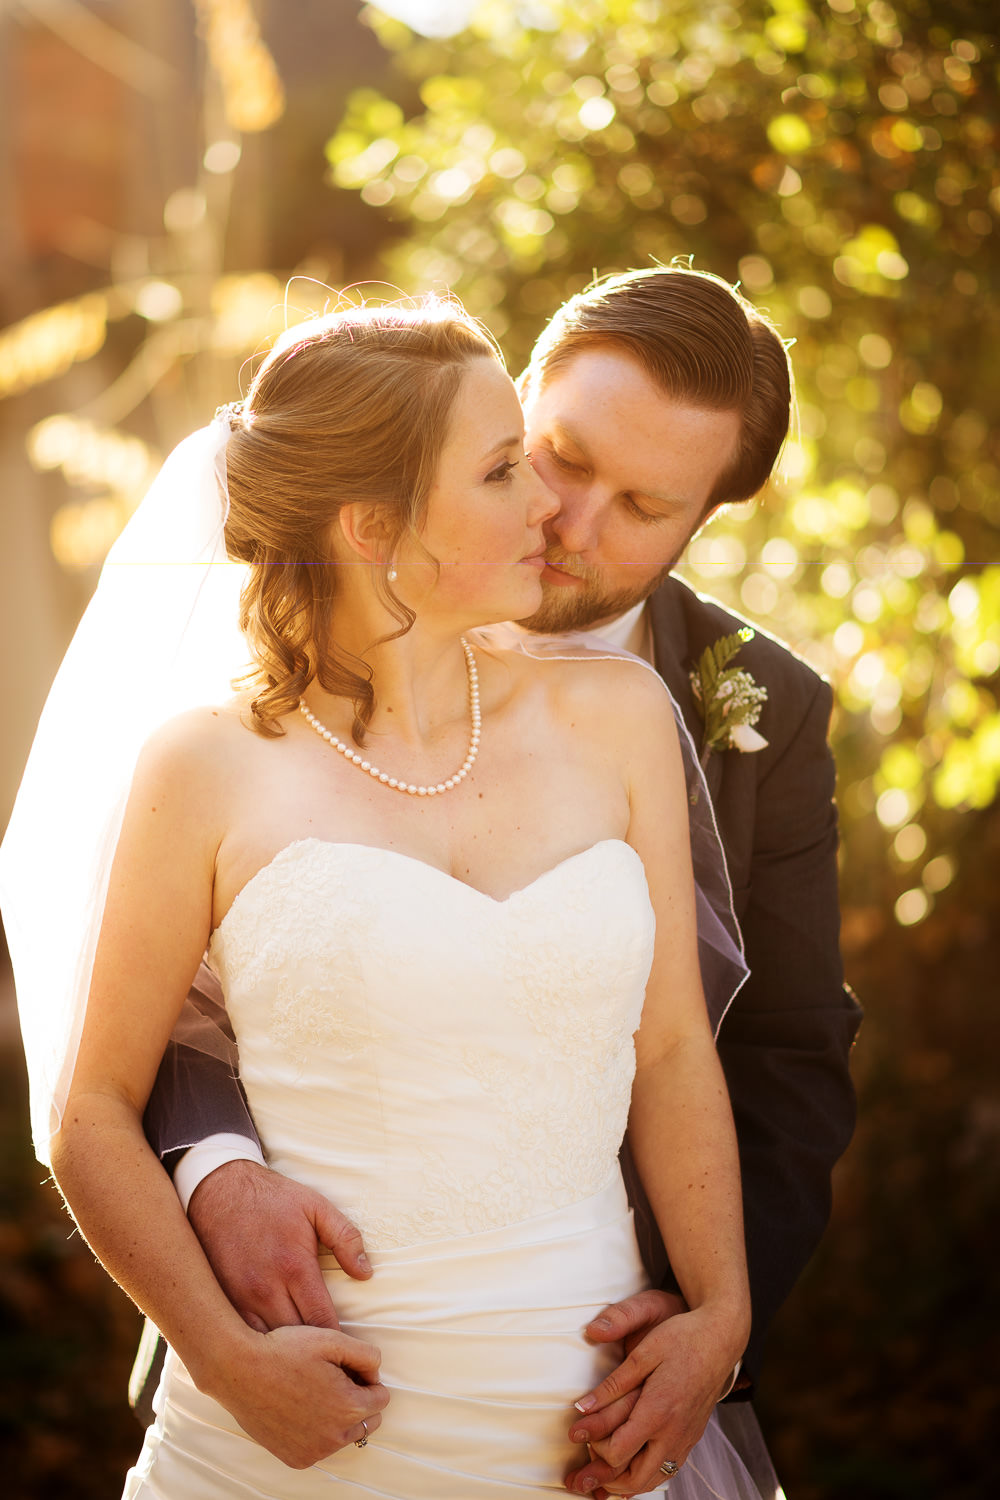 f27-Photography-Ojai-Wedding-February-2014-Groom-and-Bride-Sweet-Together